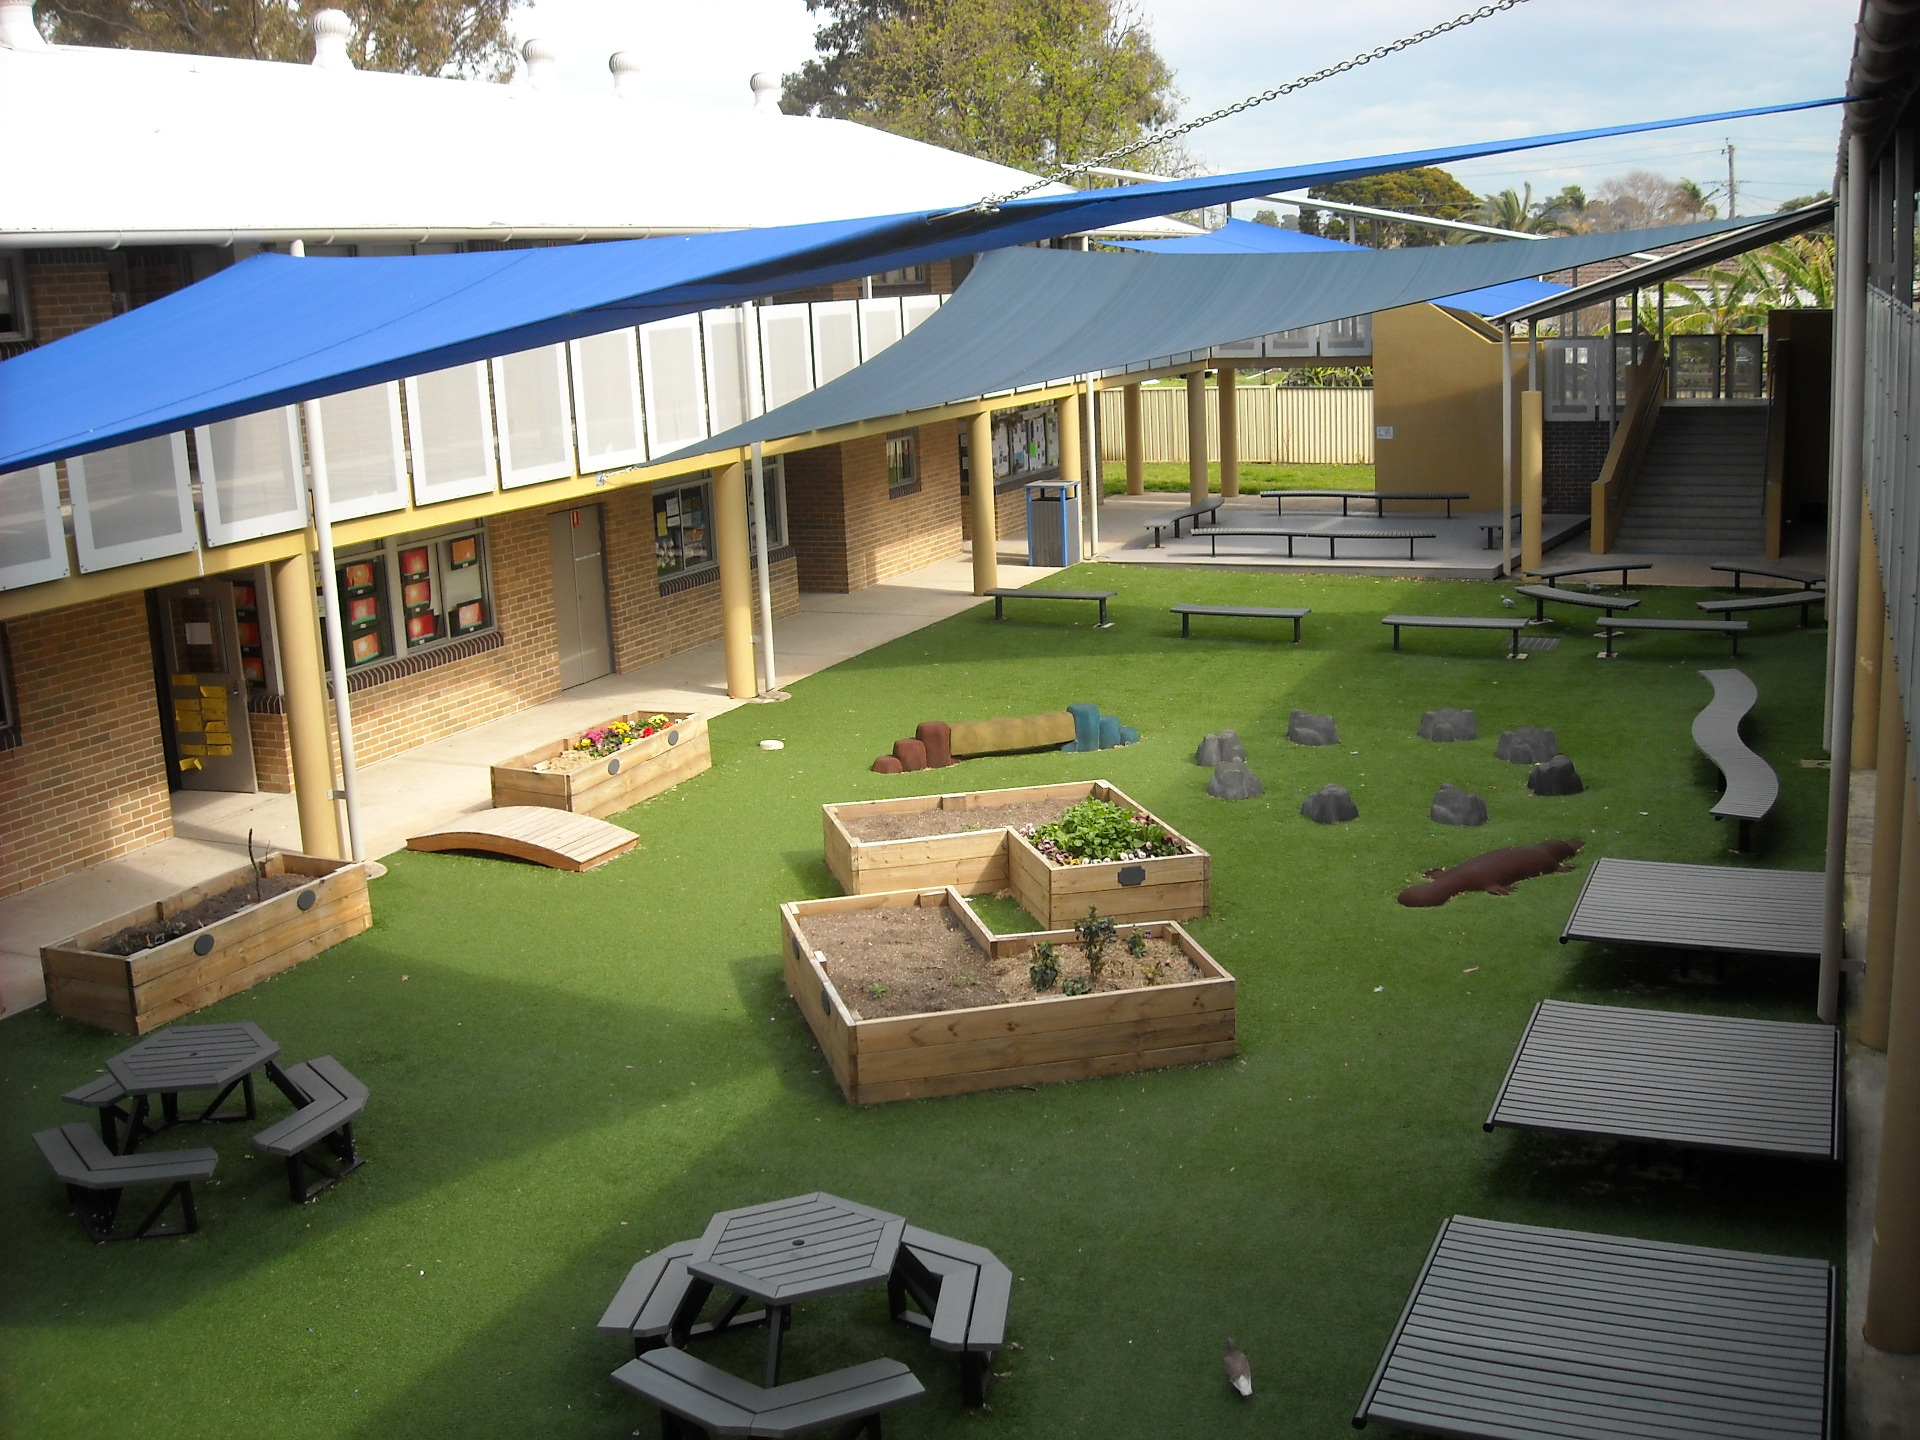 CANLEY VALE PUBLIC SCHOOL - After L.A.P.S.